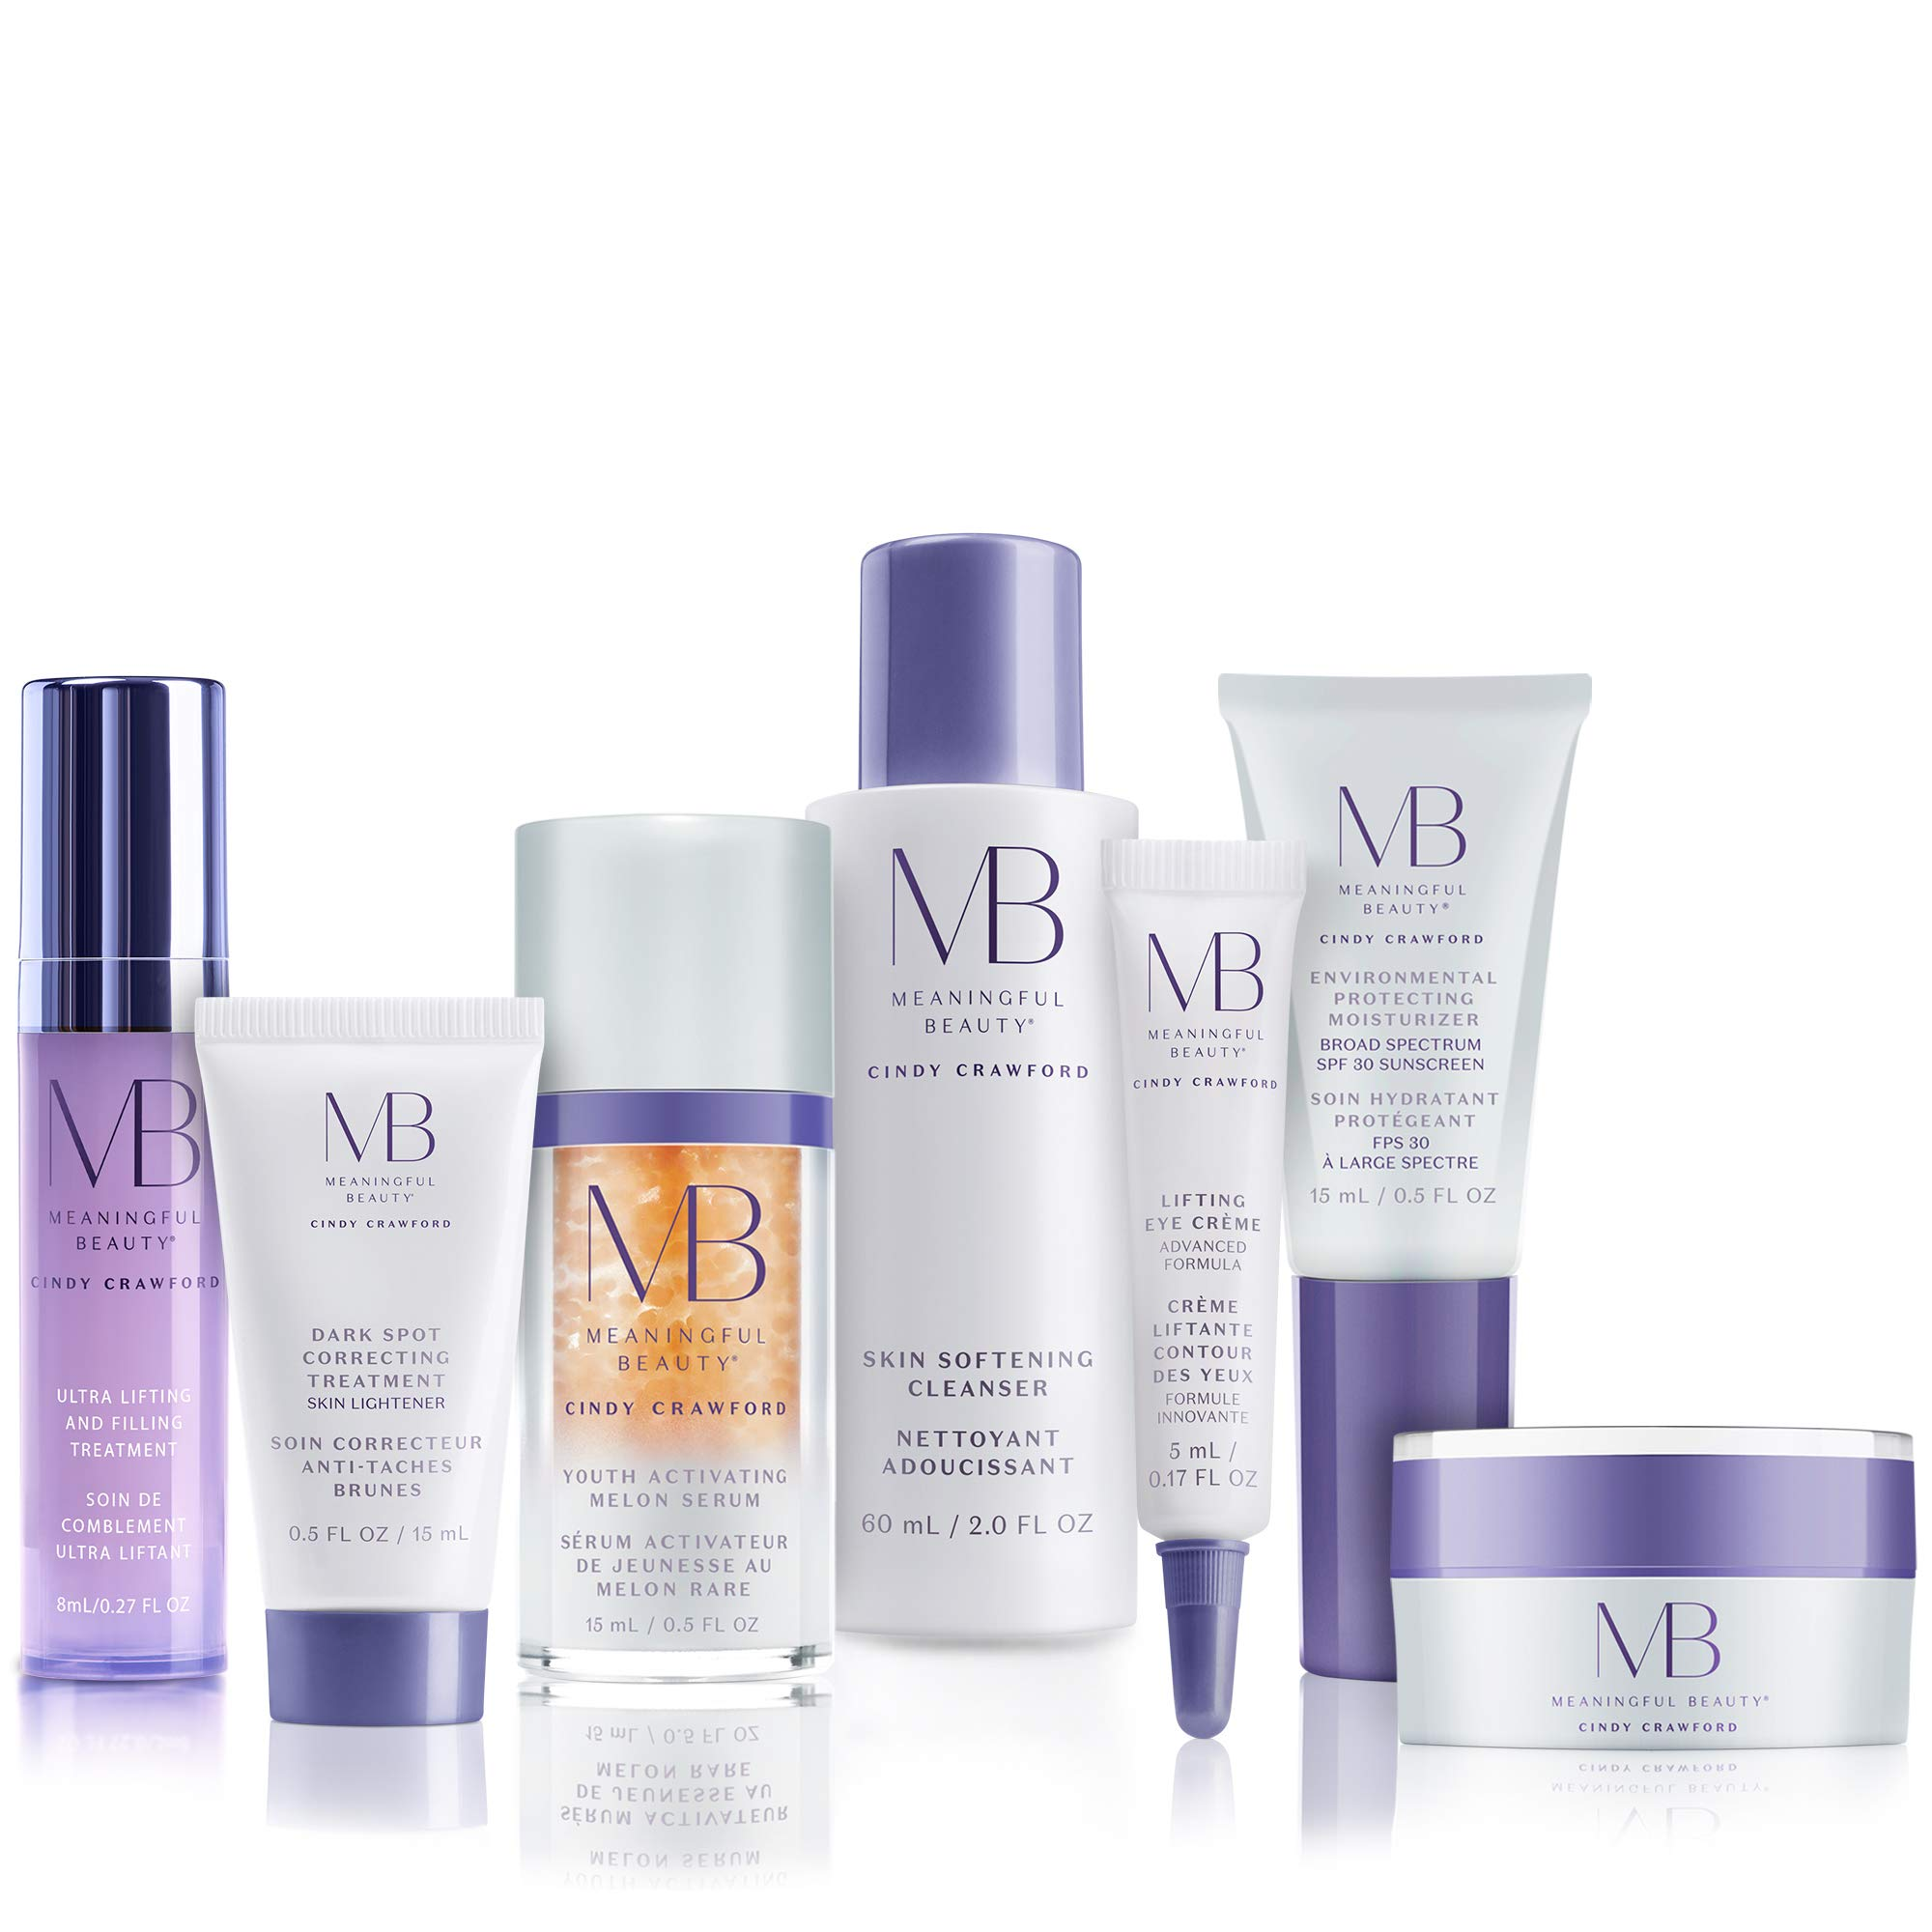 Meaningful Beauty - 7-Piece Anti-Aging Deluxe Starter System - For Lifting, Firming, Hyperpigmentation & Sun Damage